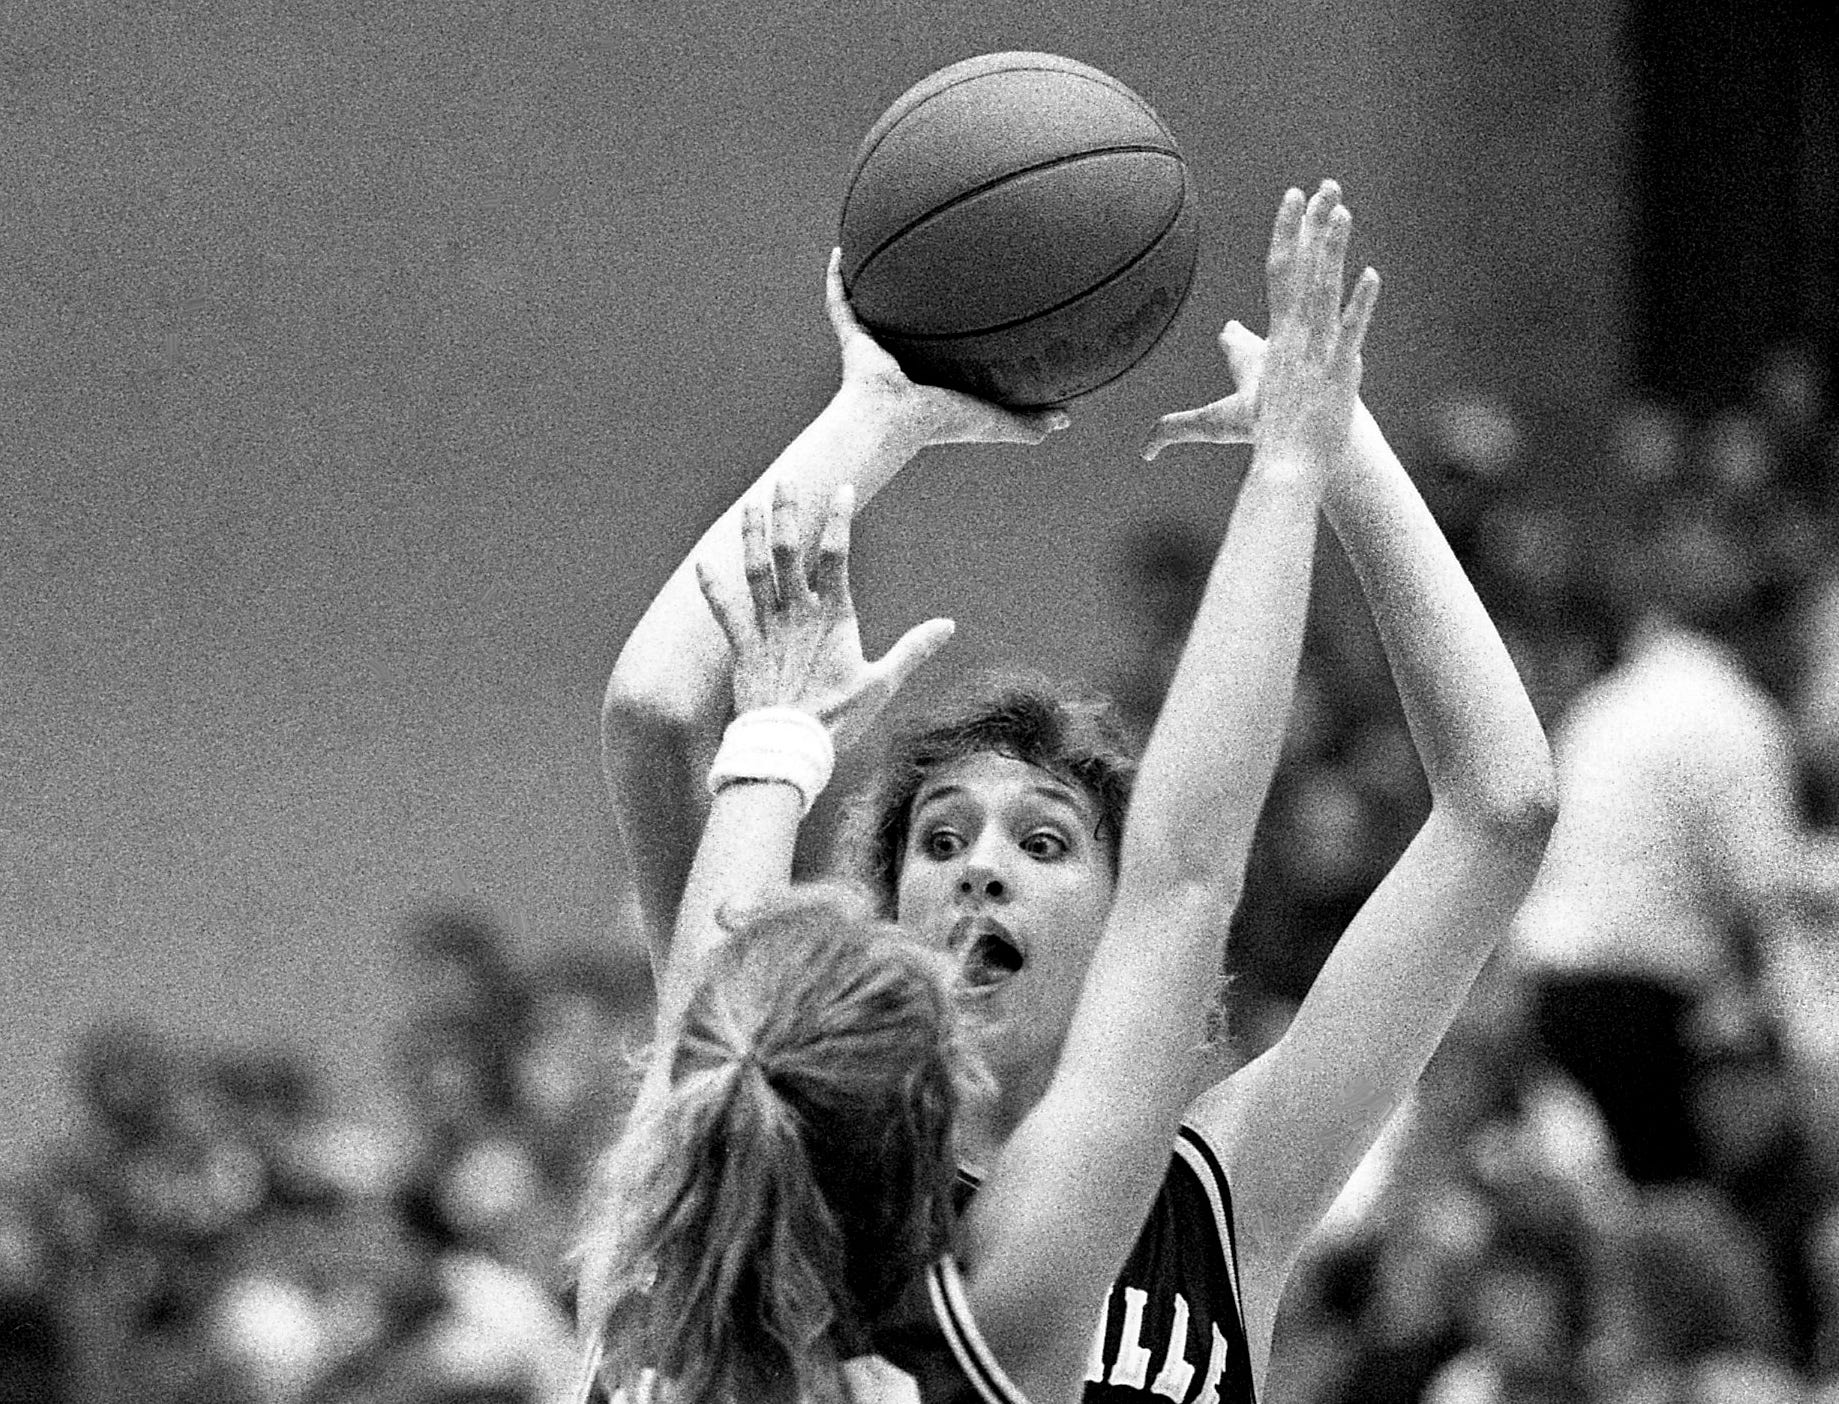 Misty Lamb of unbeaten Shelbyville High, the No. 1-ranked team in the nation, looks for a teammate as Oakland High's Kathy Klika (22) pressures her. Shelbyville won 60-39 in the TSSAA Region 4-AAA championship final at Oakland's gym March 3, 1989.